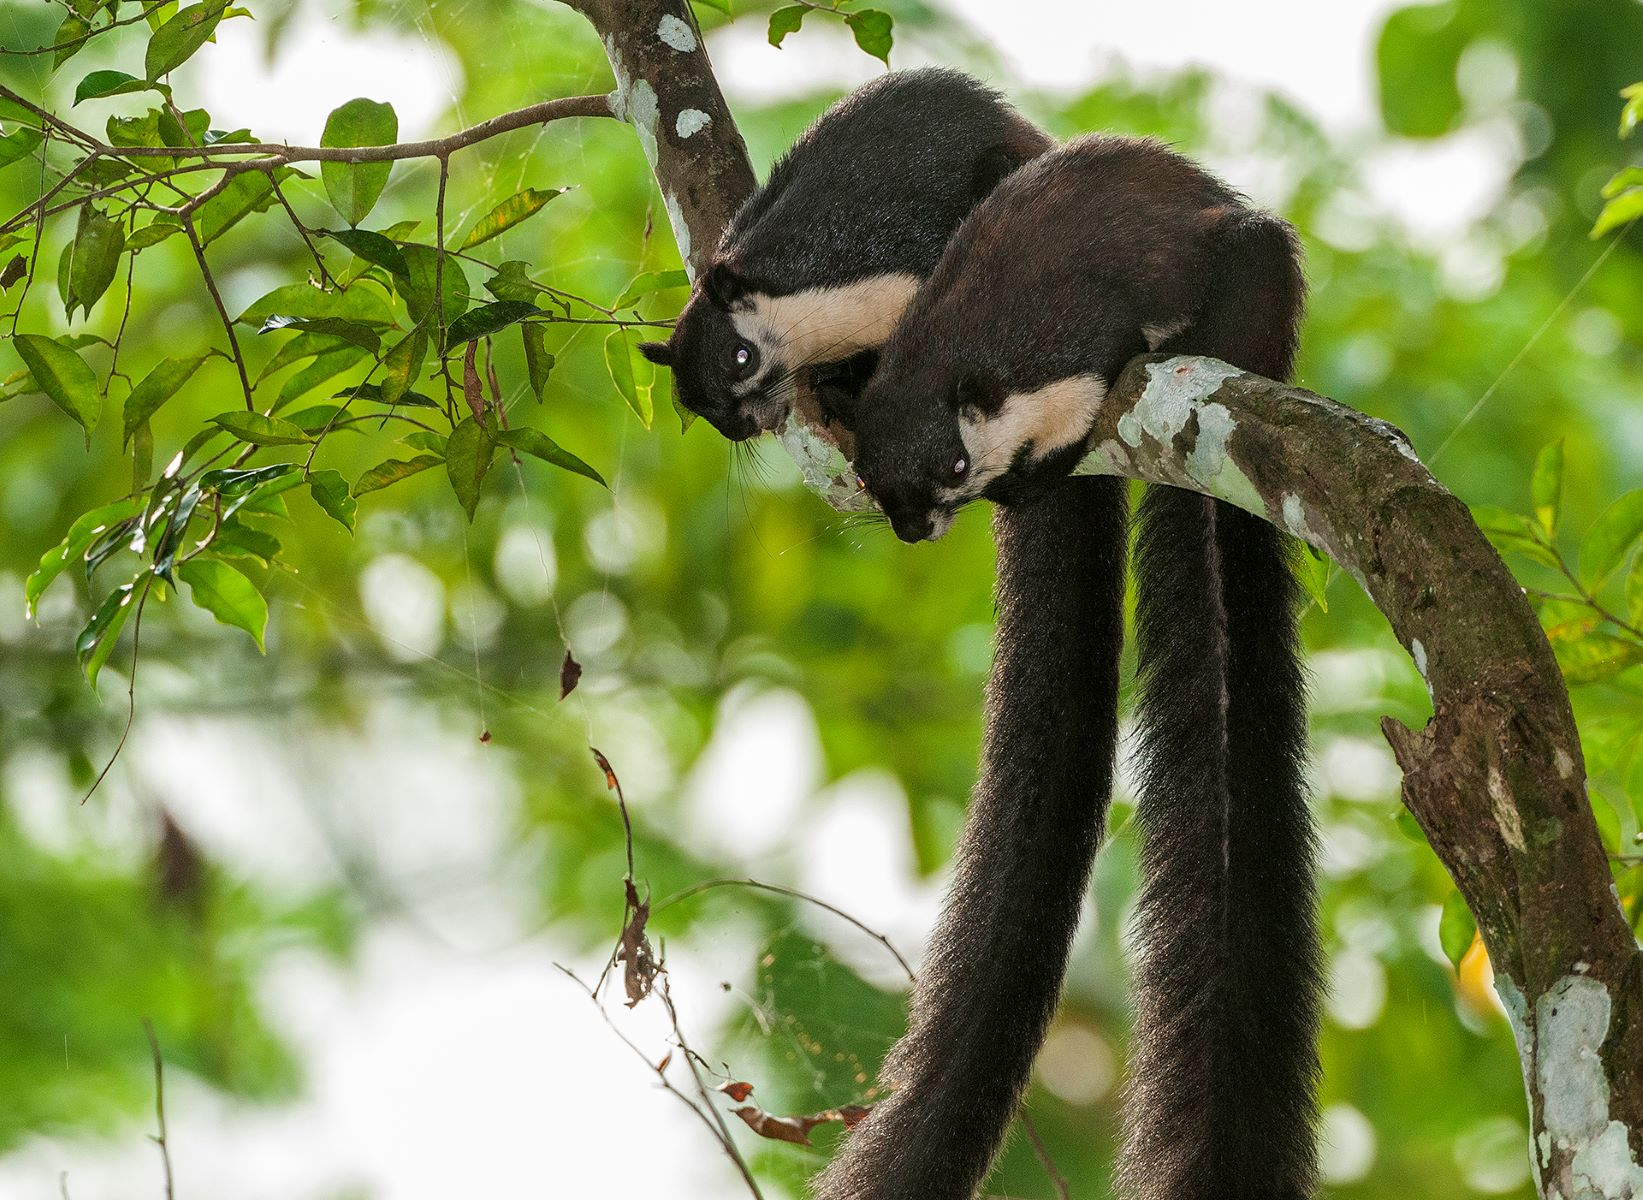 Malayan giant squirrels are mostly solitary animals, except for when they go through playful courtship periods where they chase and groom each other, and build nests together. Photo: Udayan Borthakur